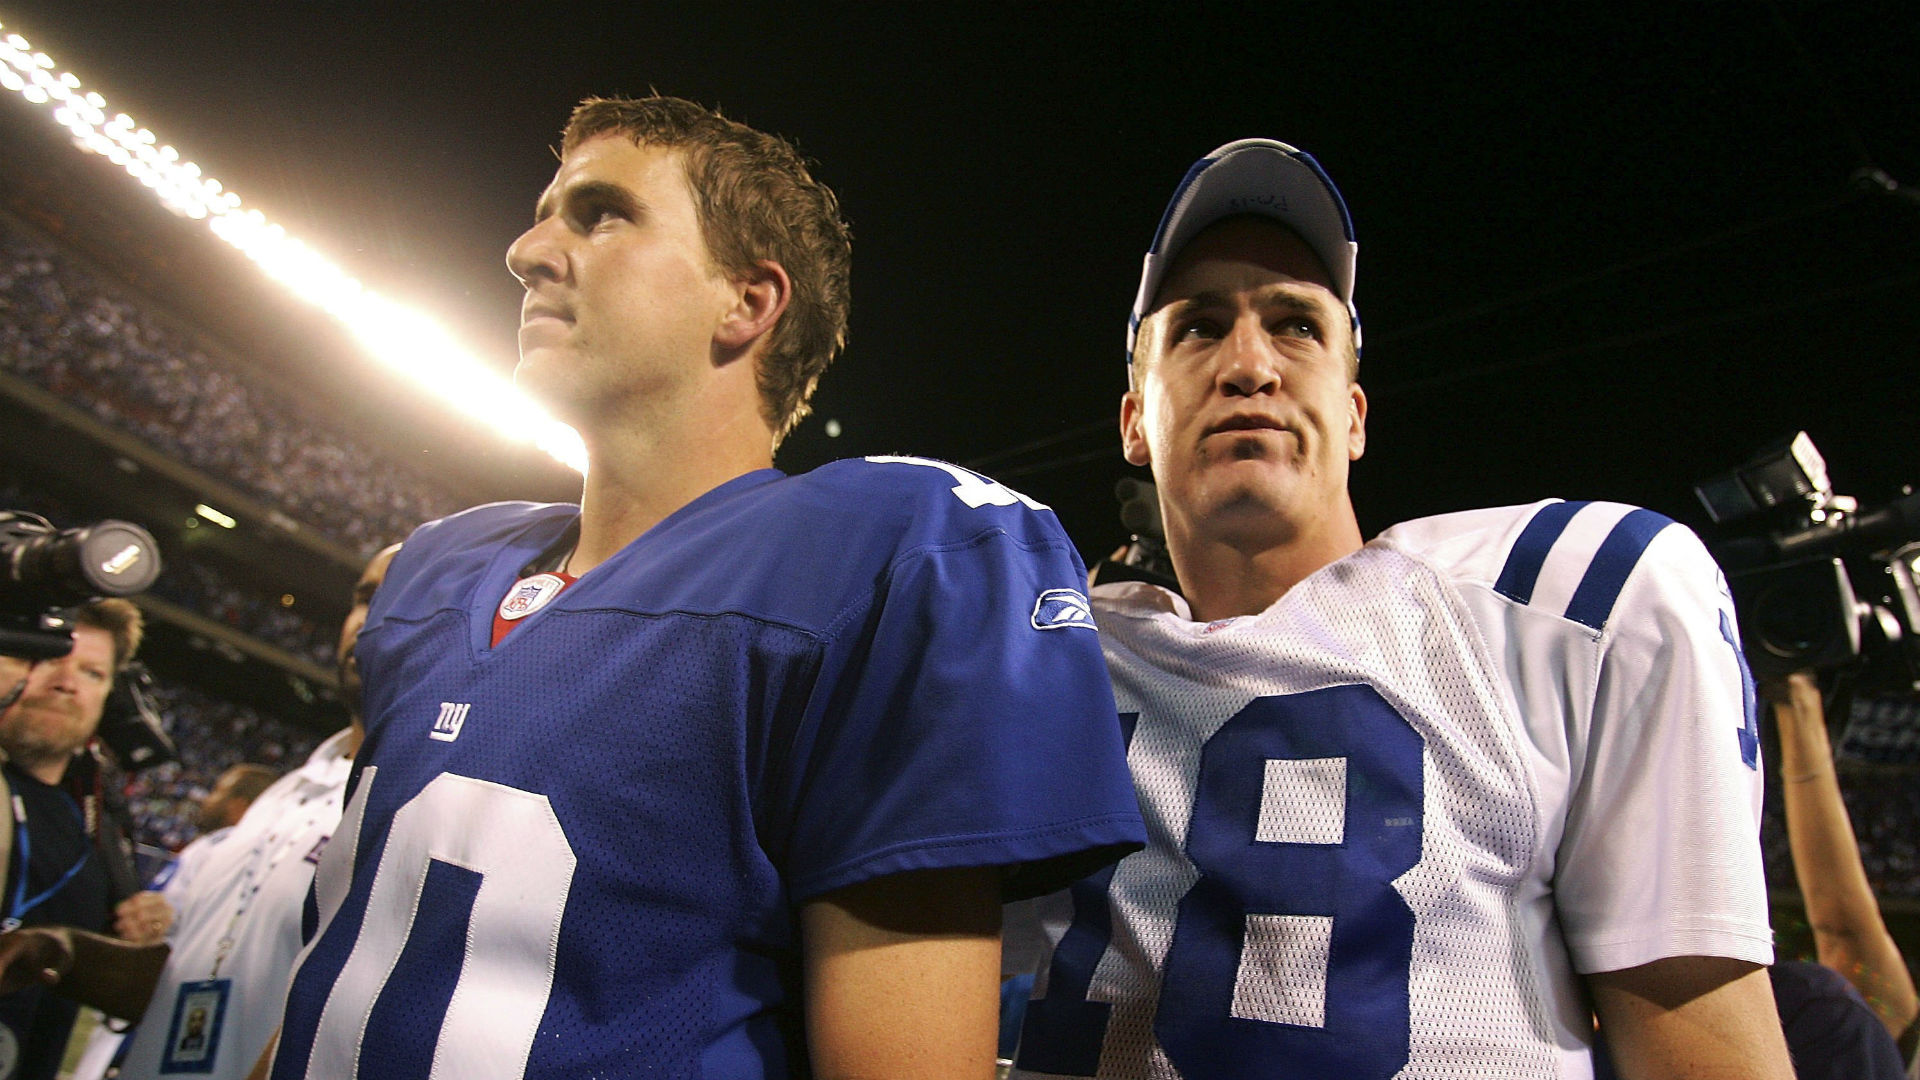 Eli Manning has 'no inside scoop' about Peyton Manning-to-Jets rumors